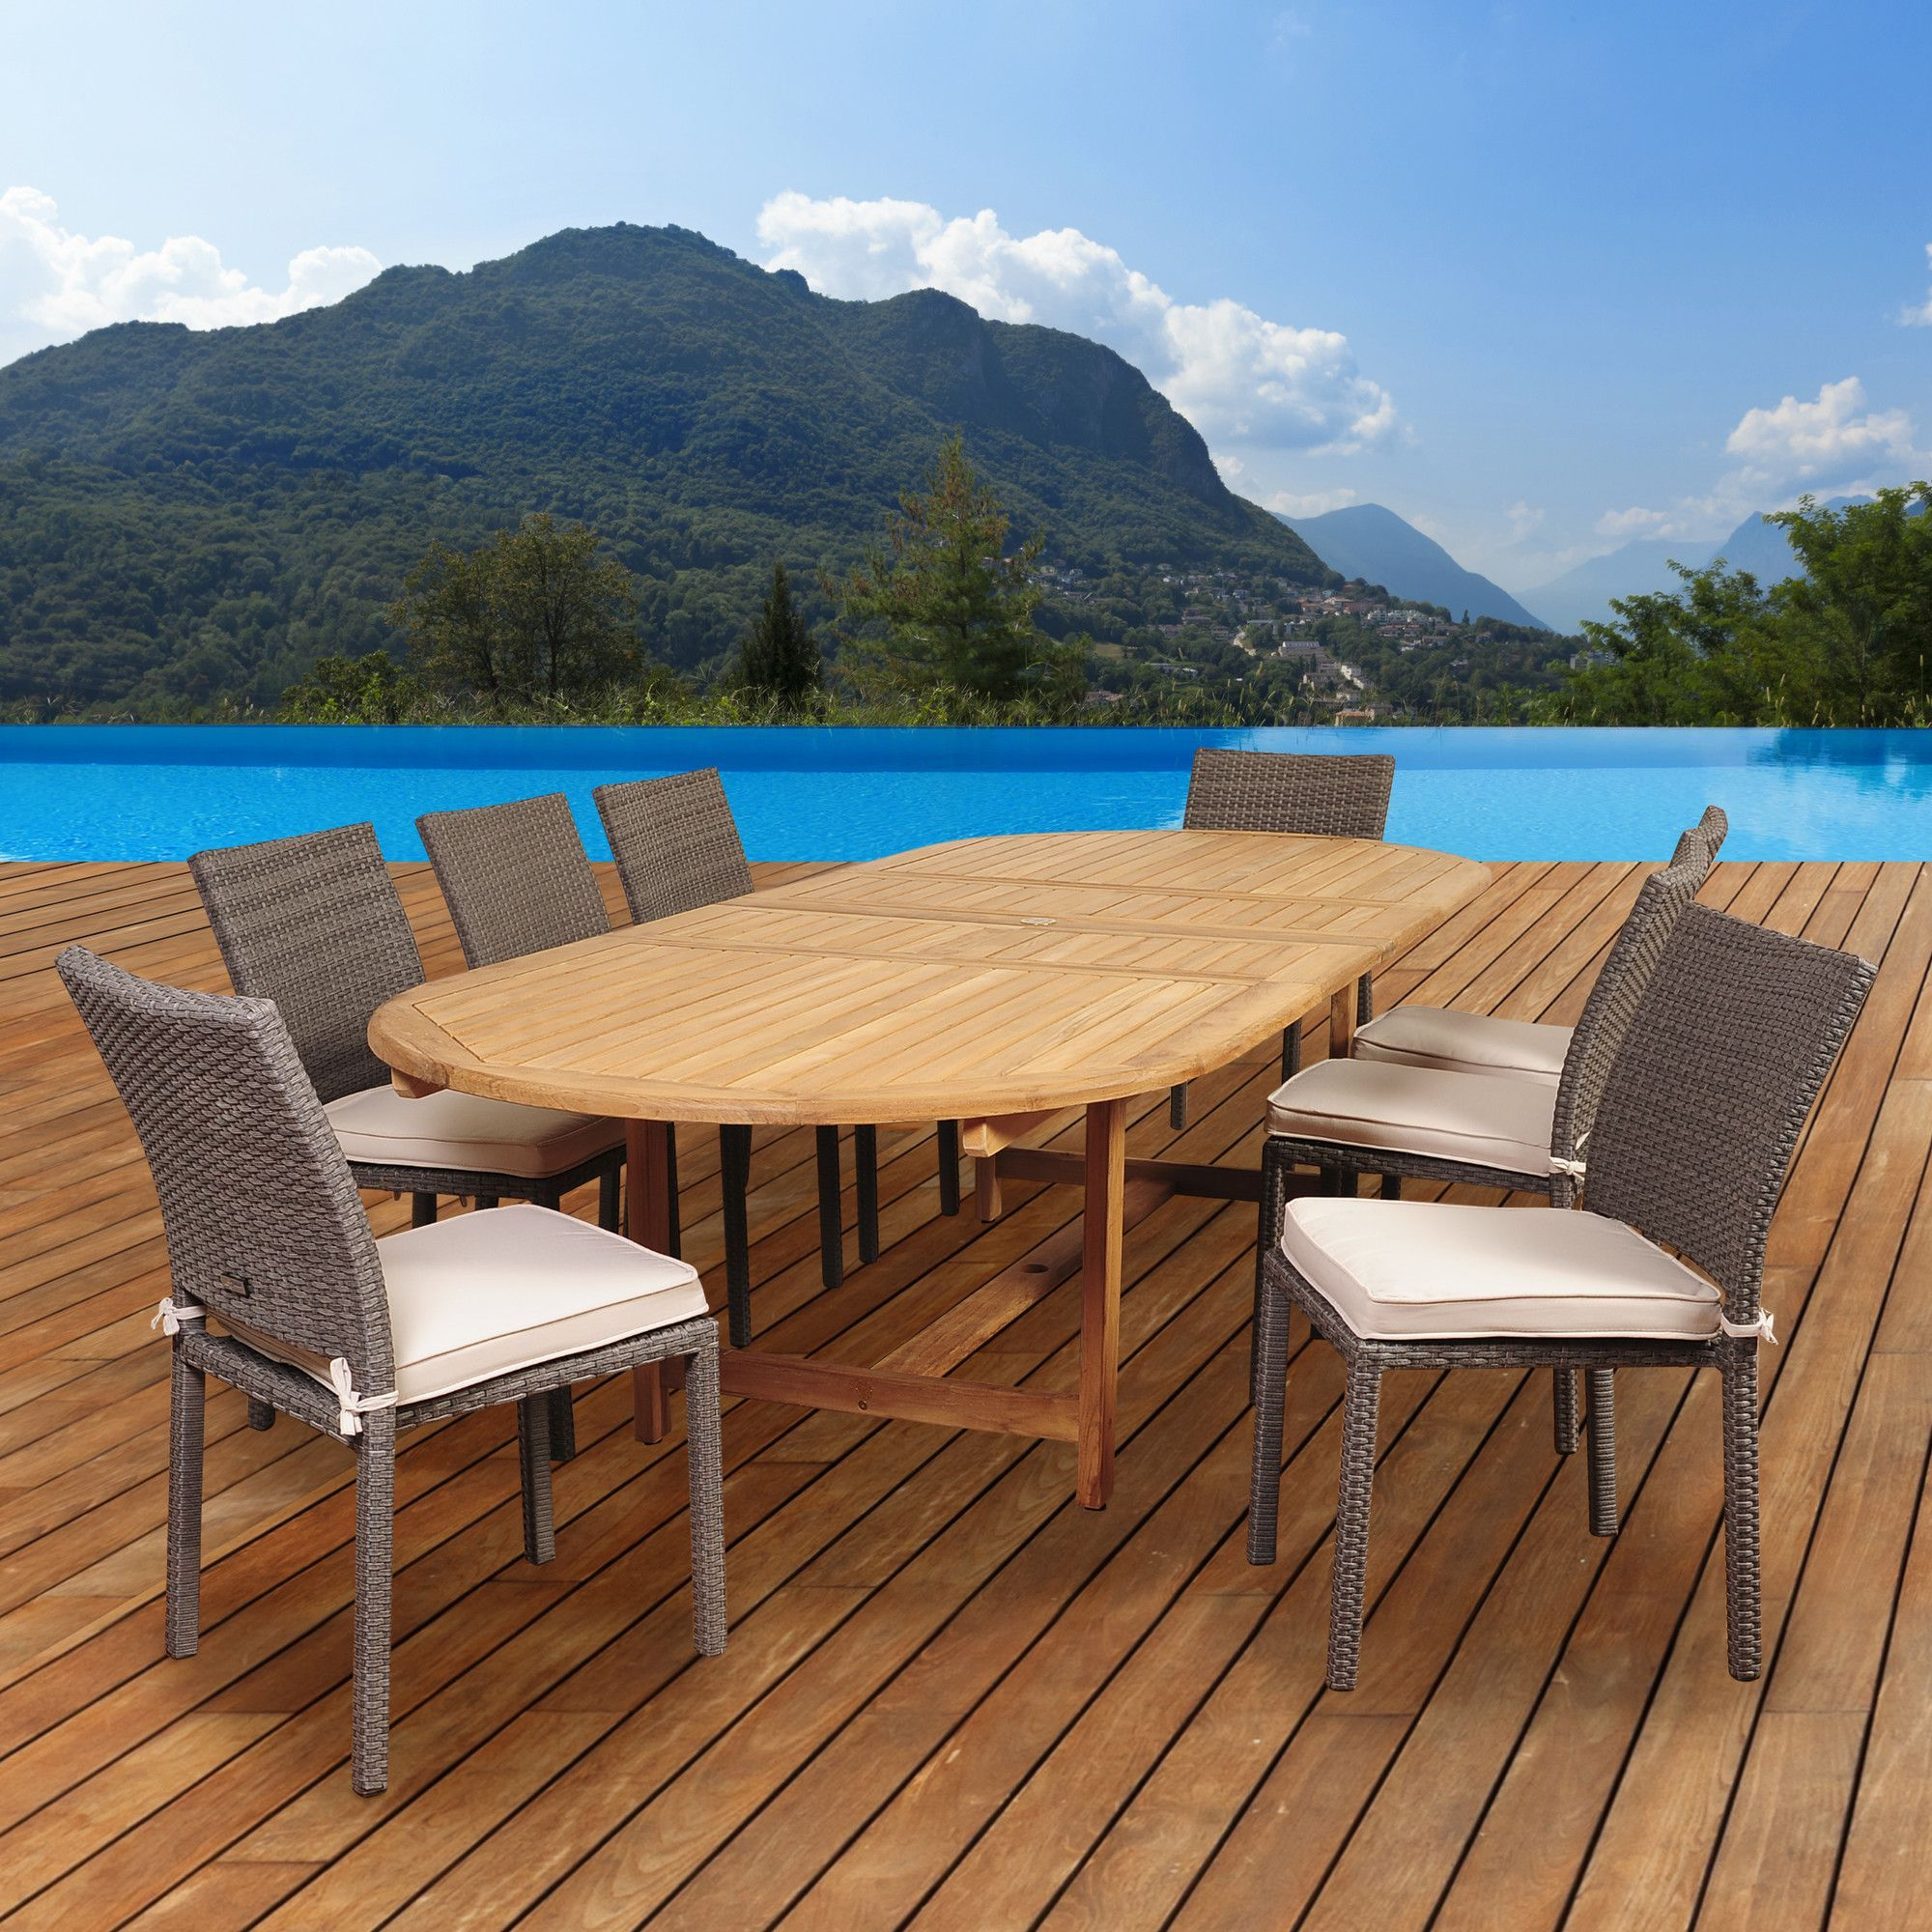 Amazonia Buena Vista 9 Piece Dining Set with Cushions